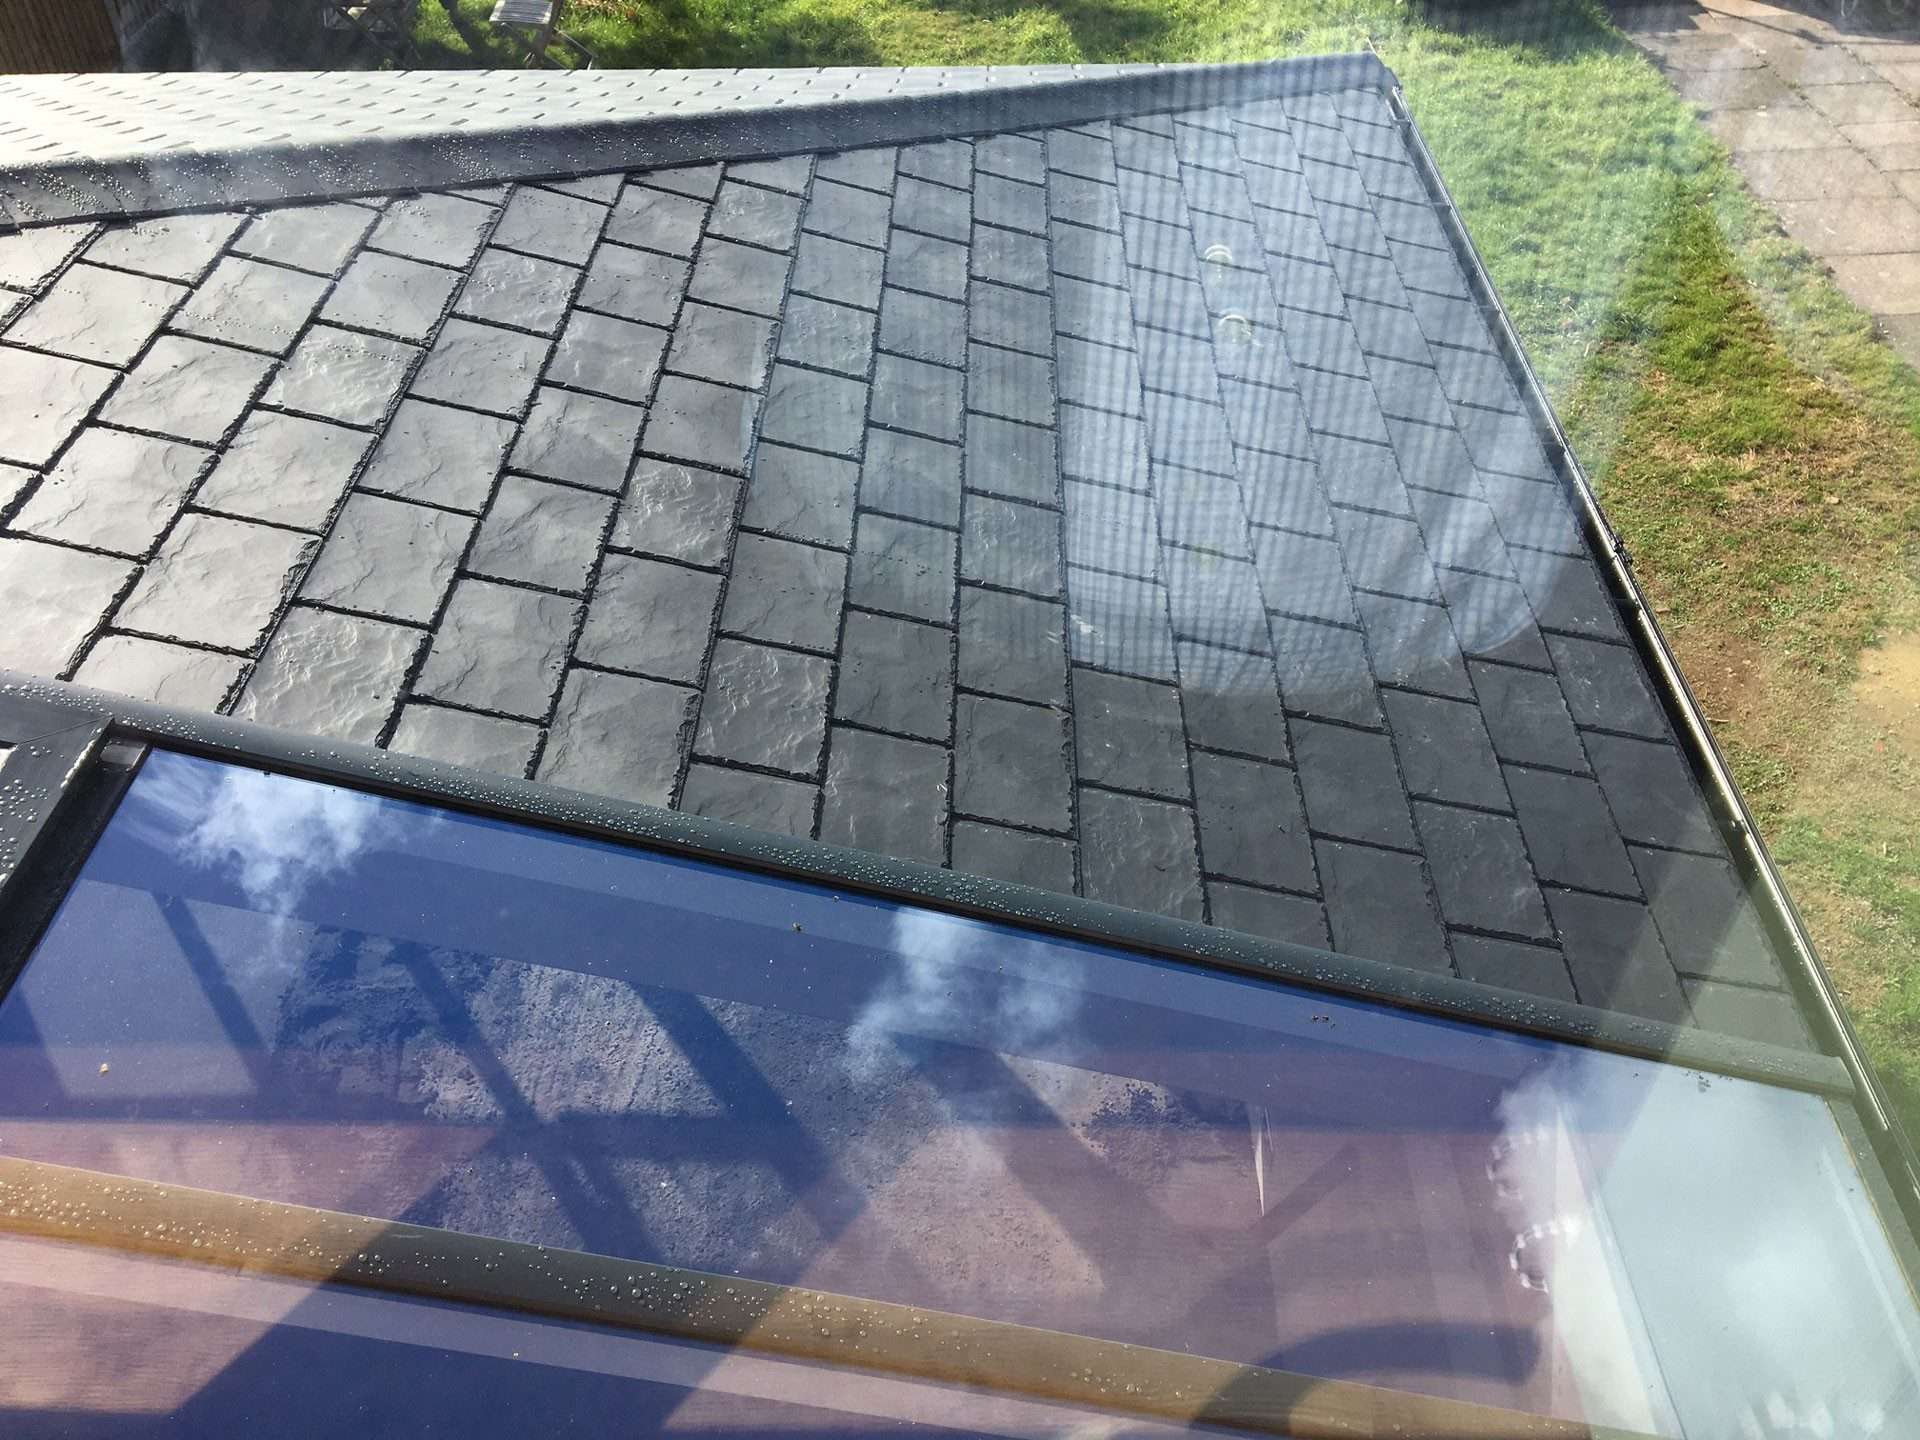 Ultraroof tiled roof with high performance glass panel